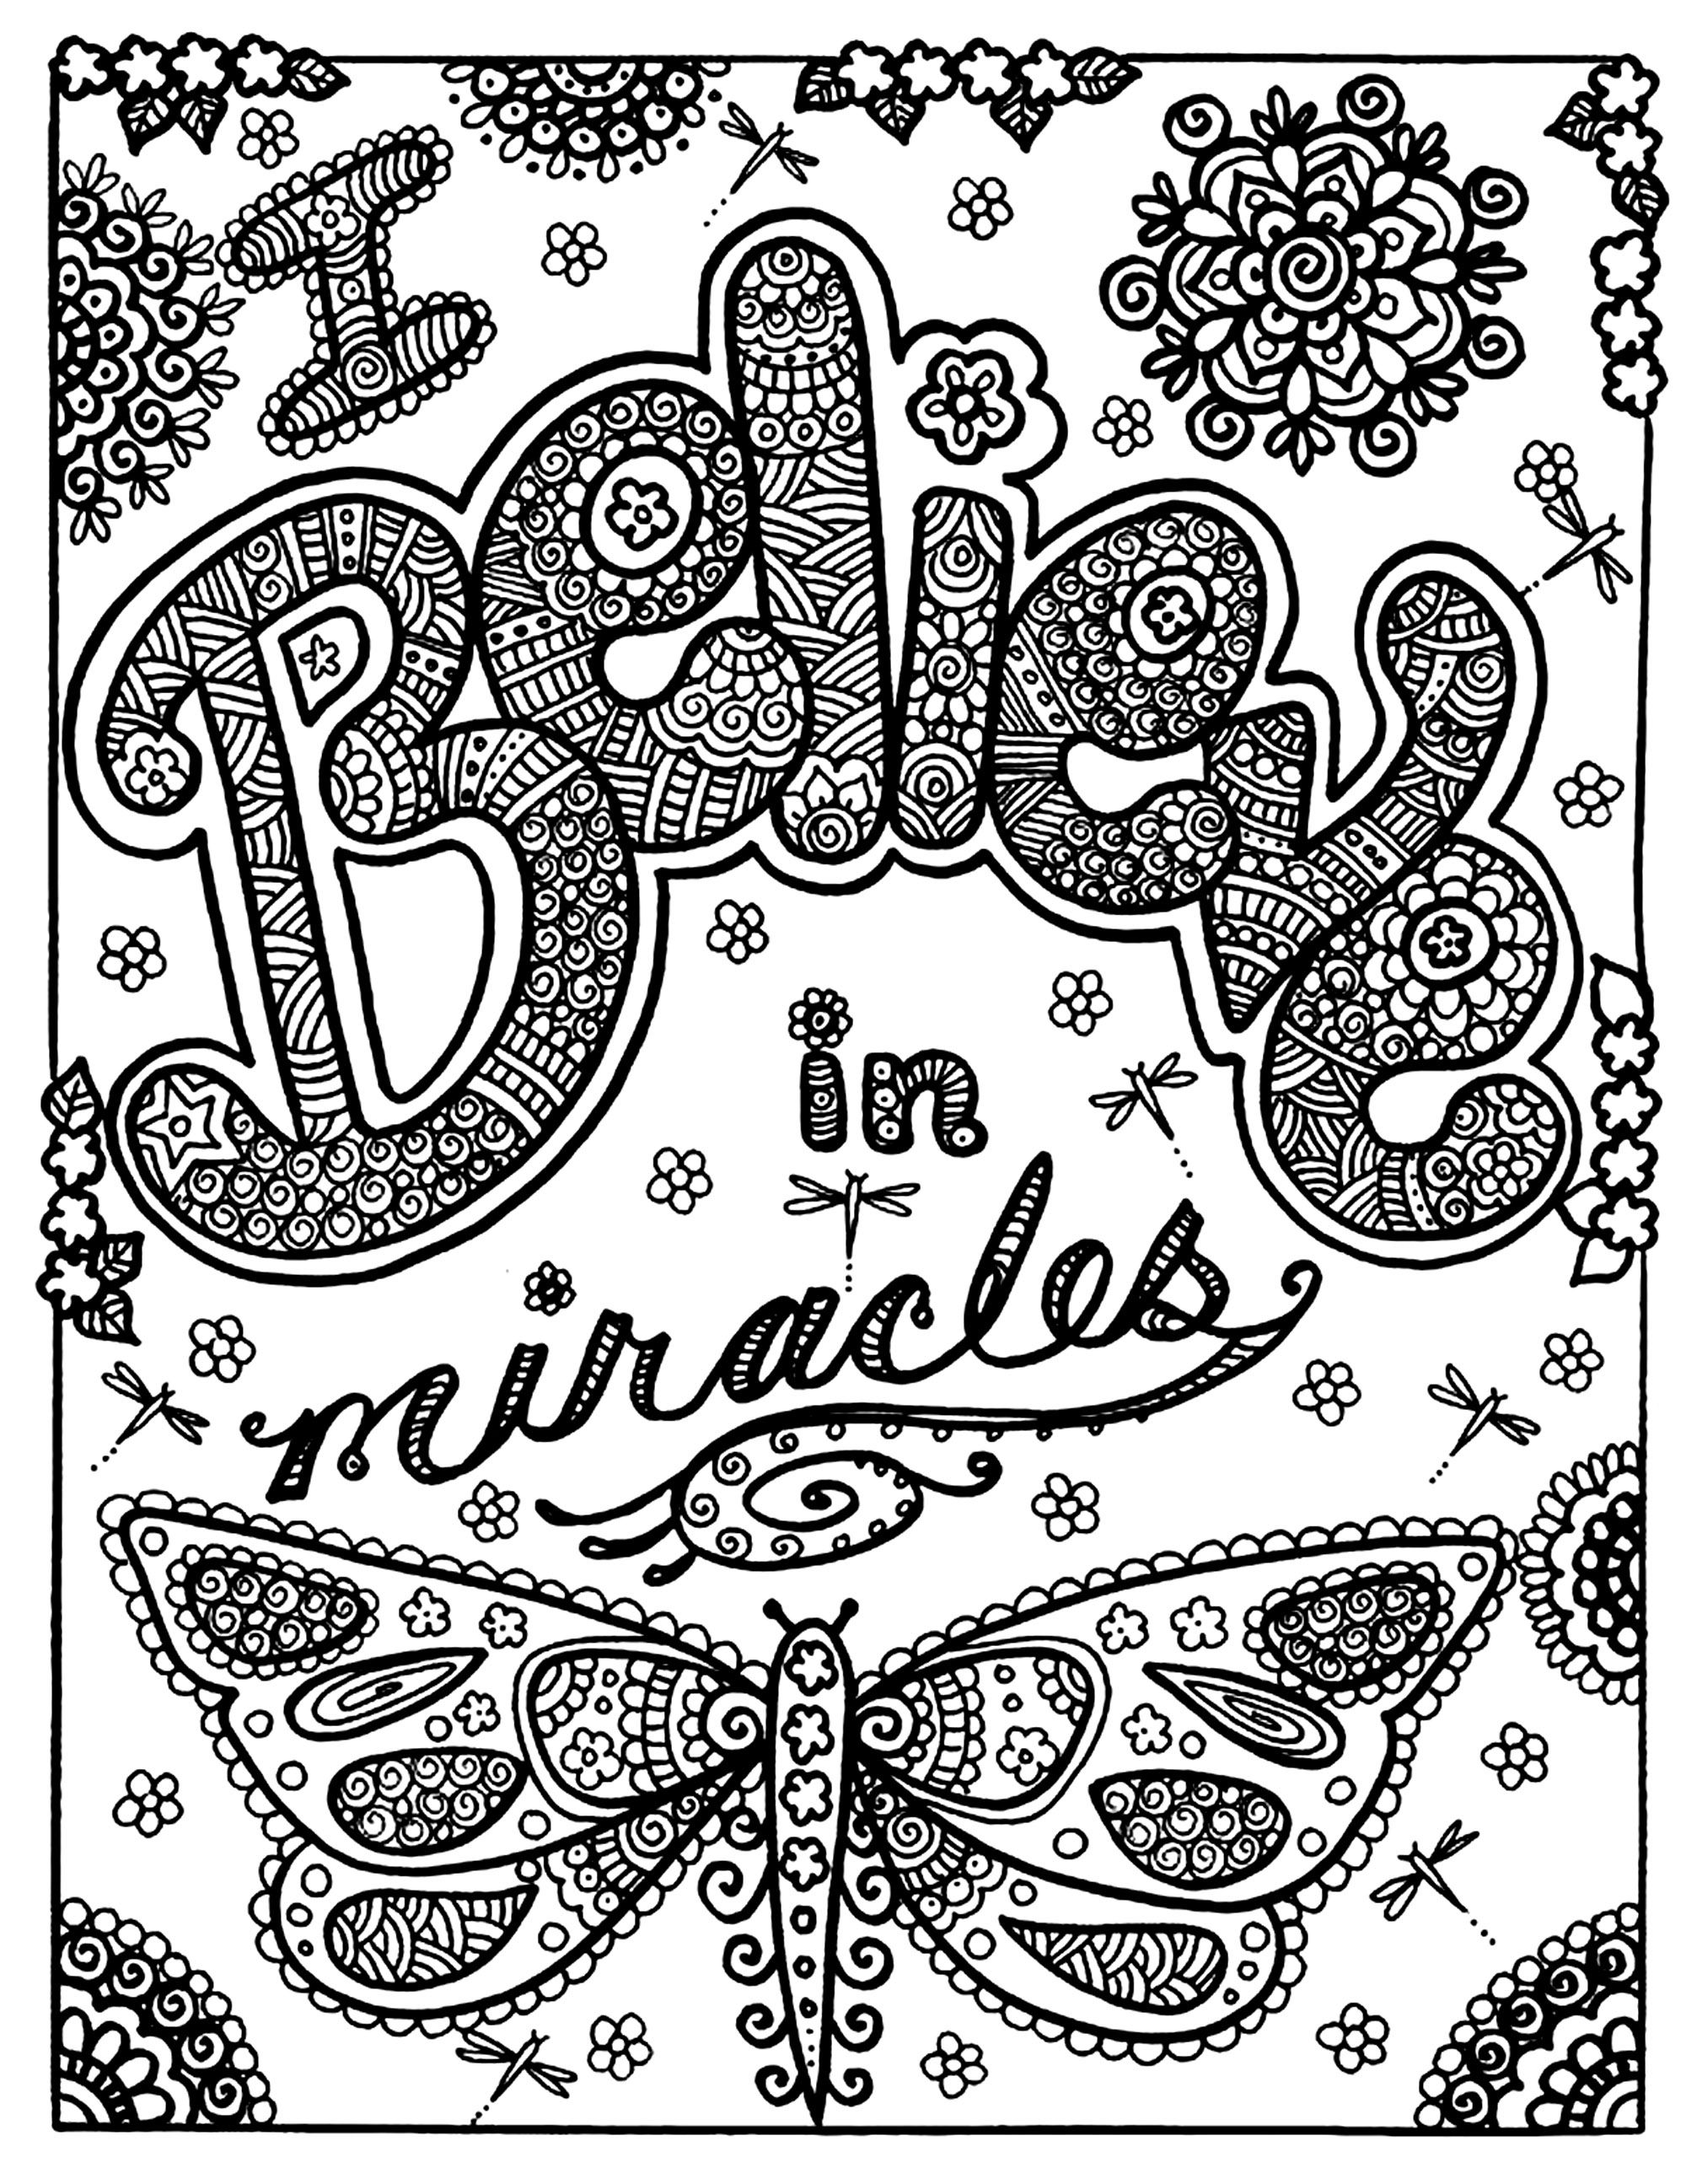 Insects Coloring Pages For Adults Quote Coloring Pages Butterfly Coloring Page Insect Coloring Pages [ 2590 x 2000 Pixel ]